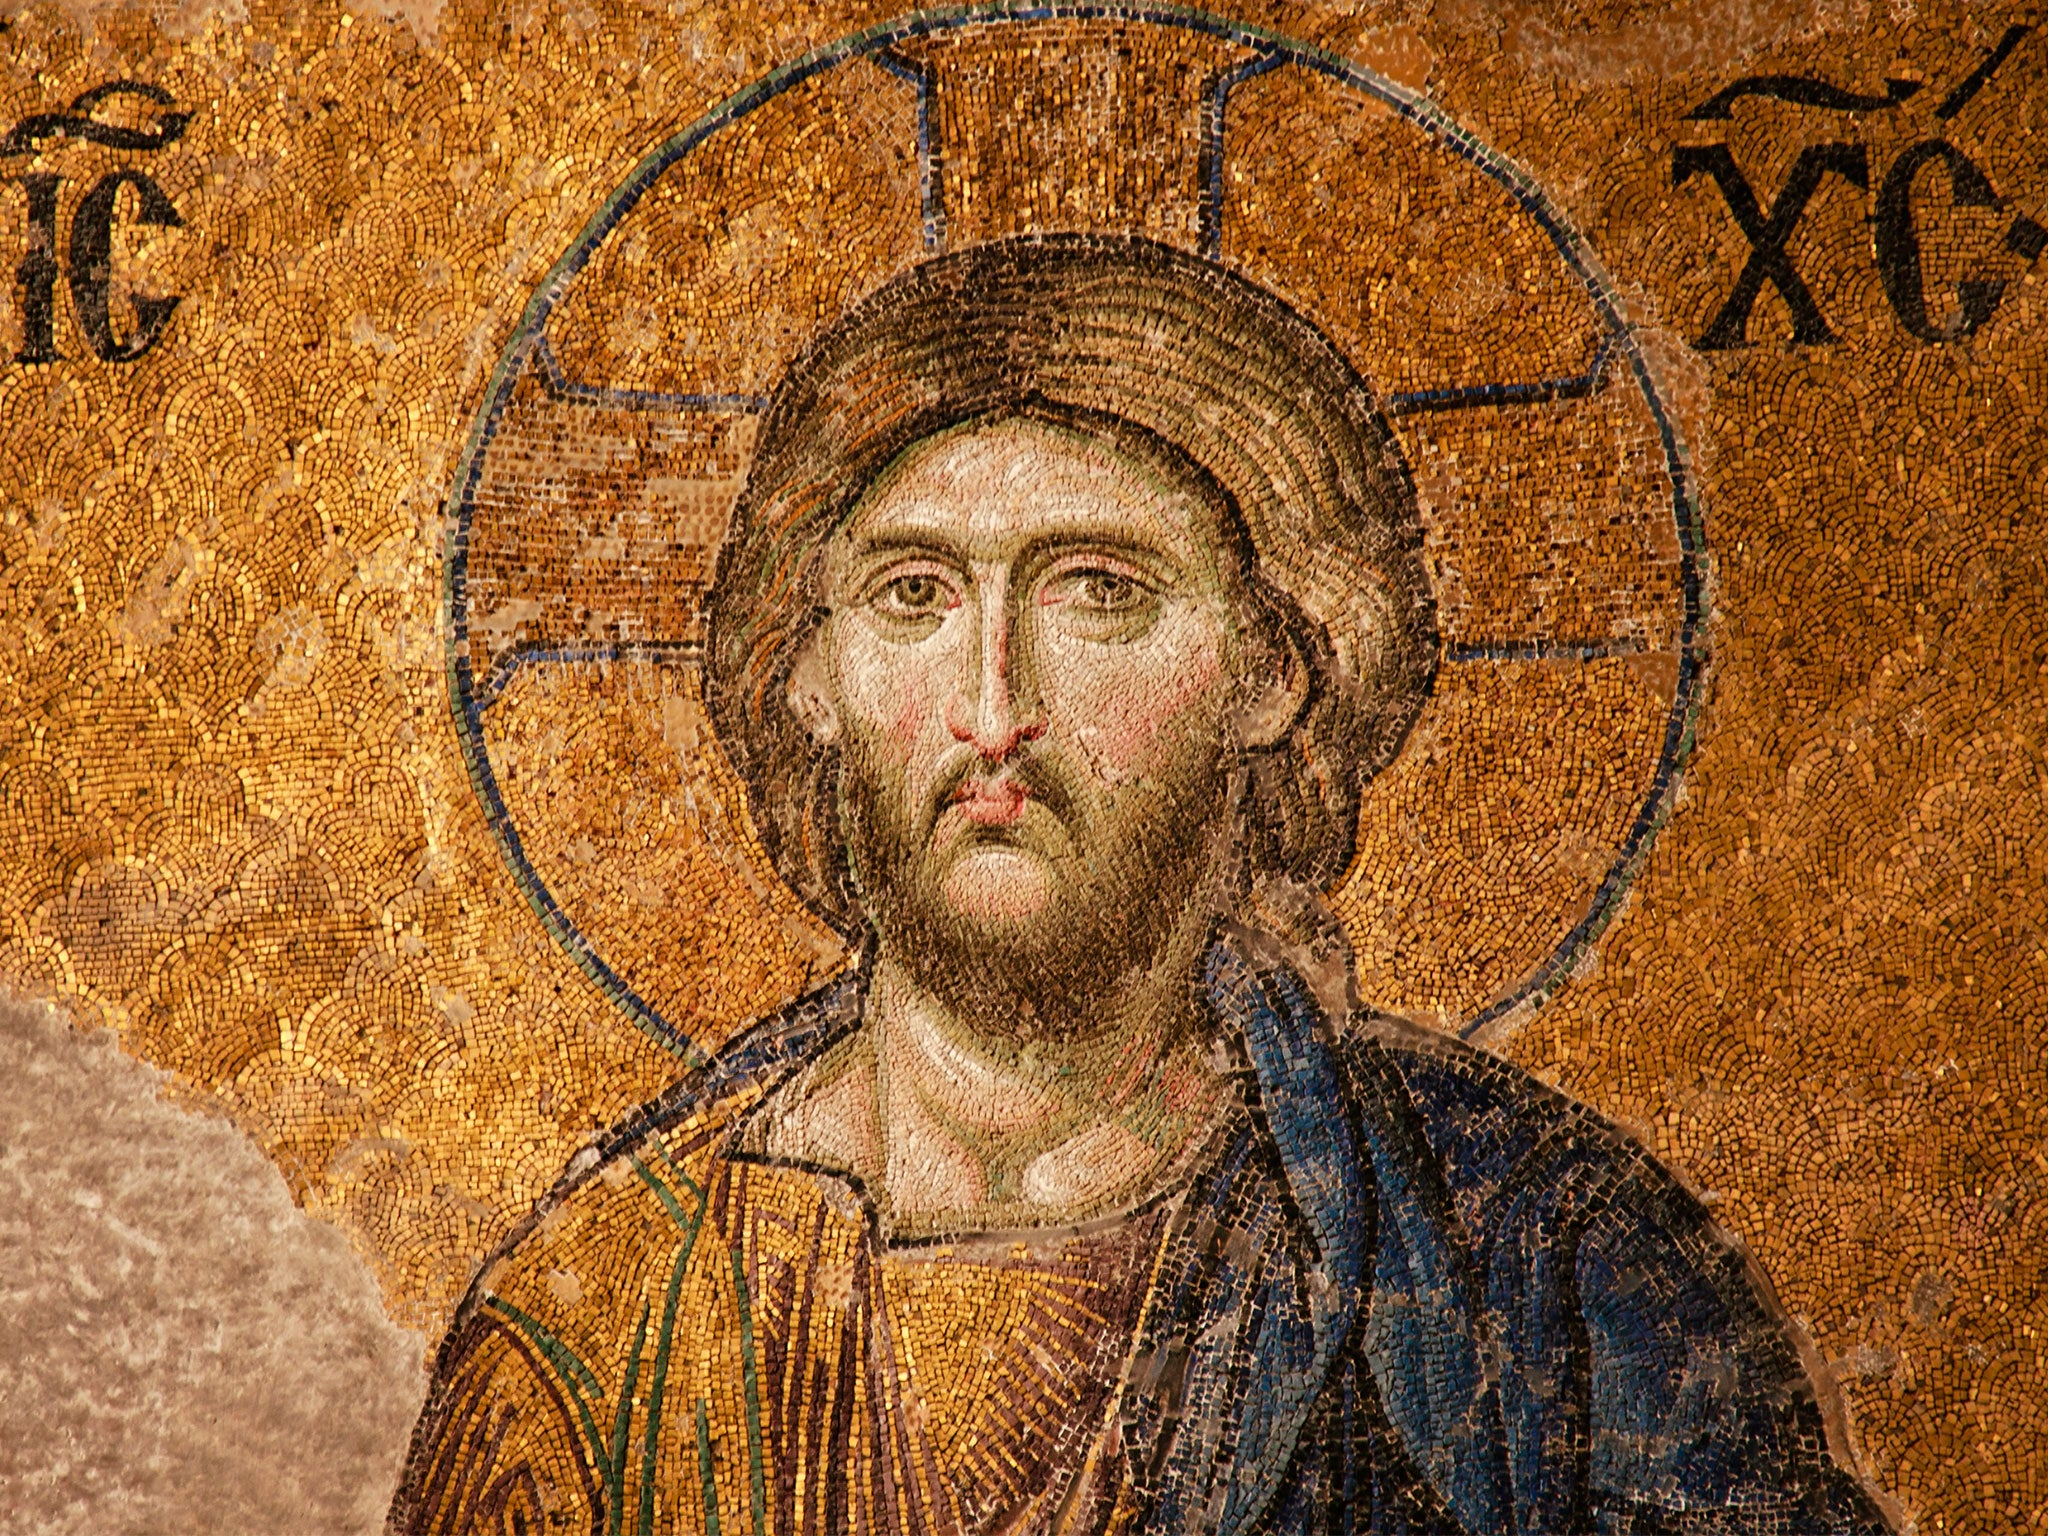 Why do people suddenly think Jesus was a Greek man called Apollonius?